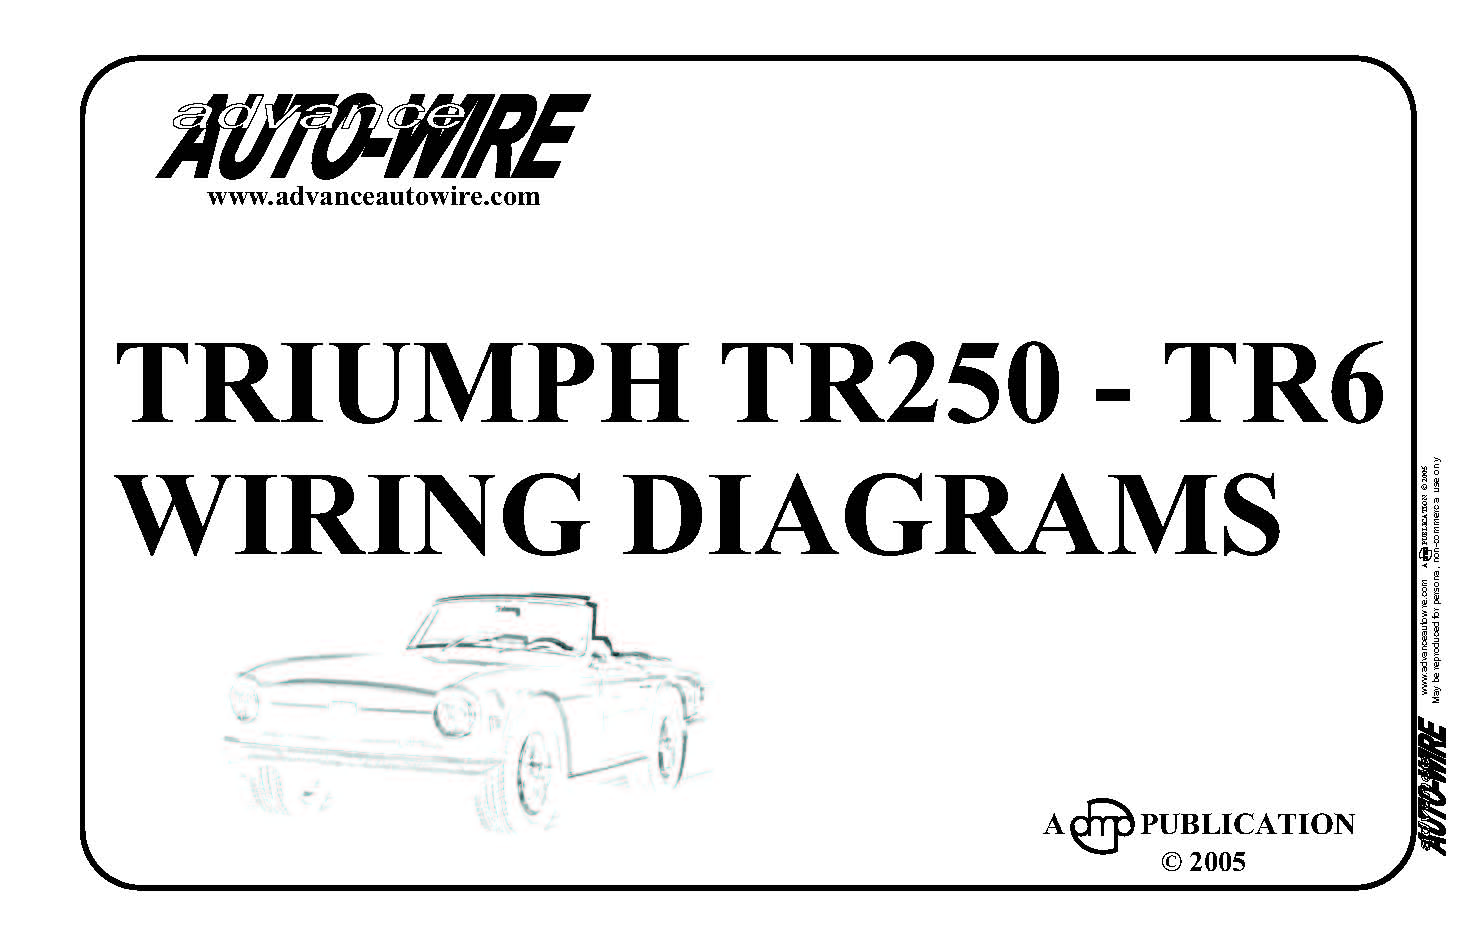 Enchanting Tr6 Wiring Diagram Ensign Wiring Schematics and